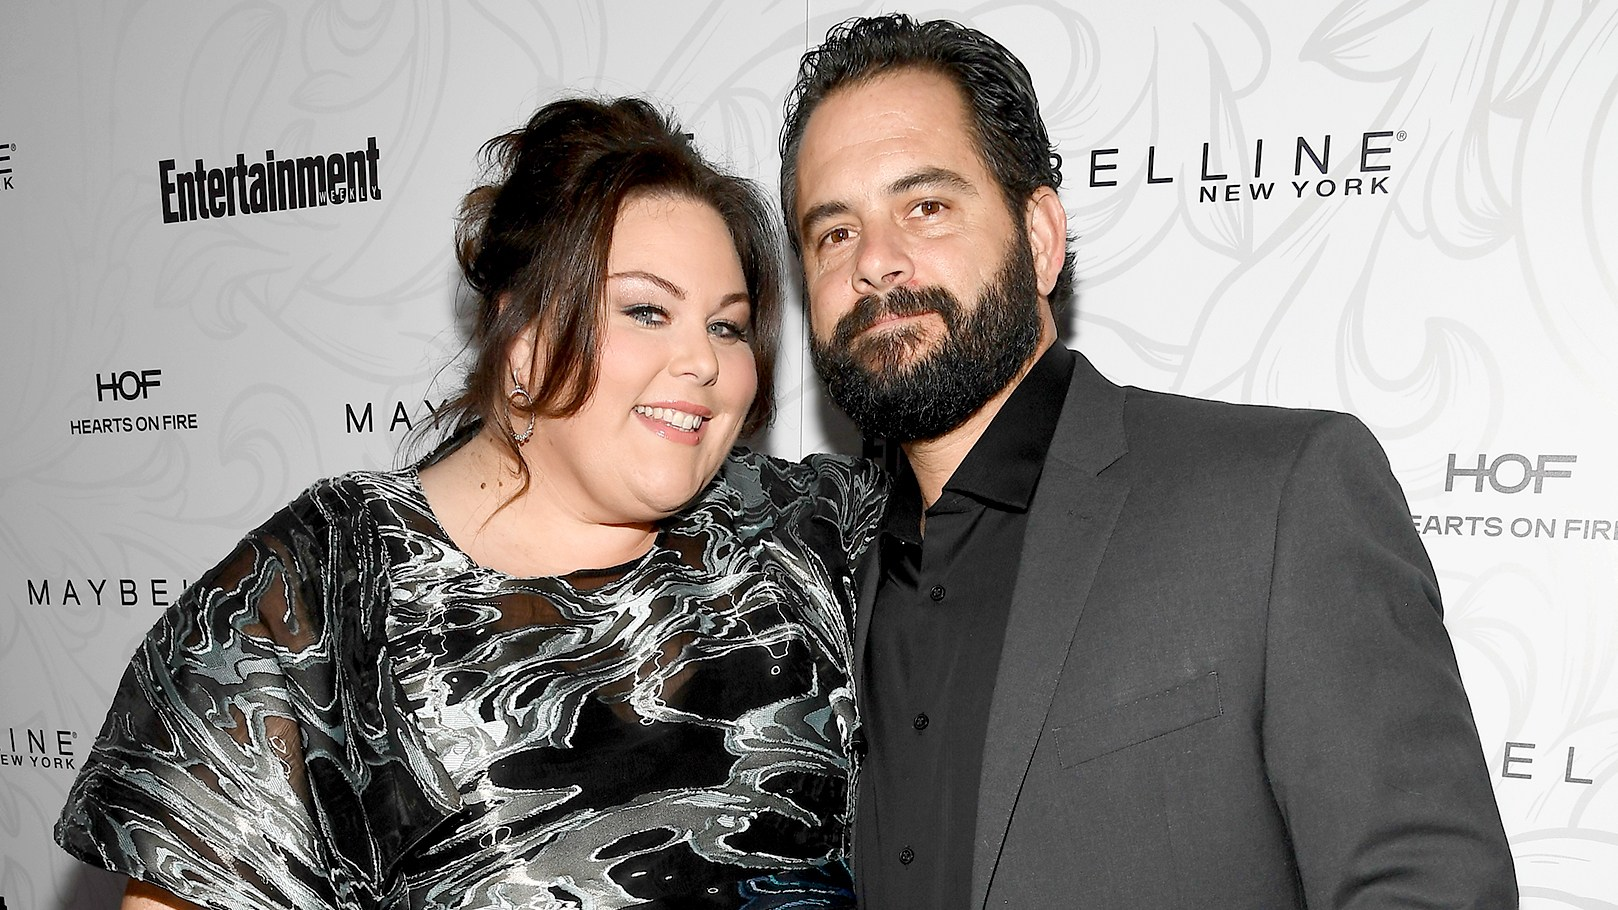 Chrissy Metz and Josh Stancil attends the Entertainment Weekly Celebration of SAG Award Nominees sponsored by Maybelline New York at Chateau Marmont on January 28, 2017 in Los Angeles, California.